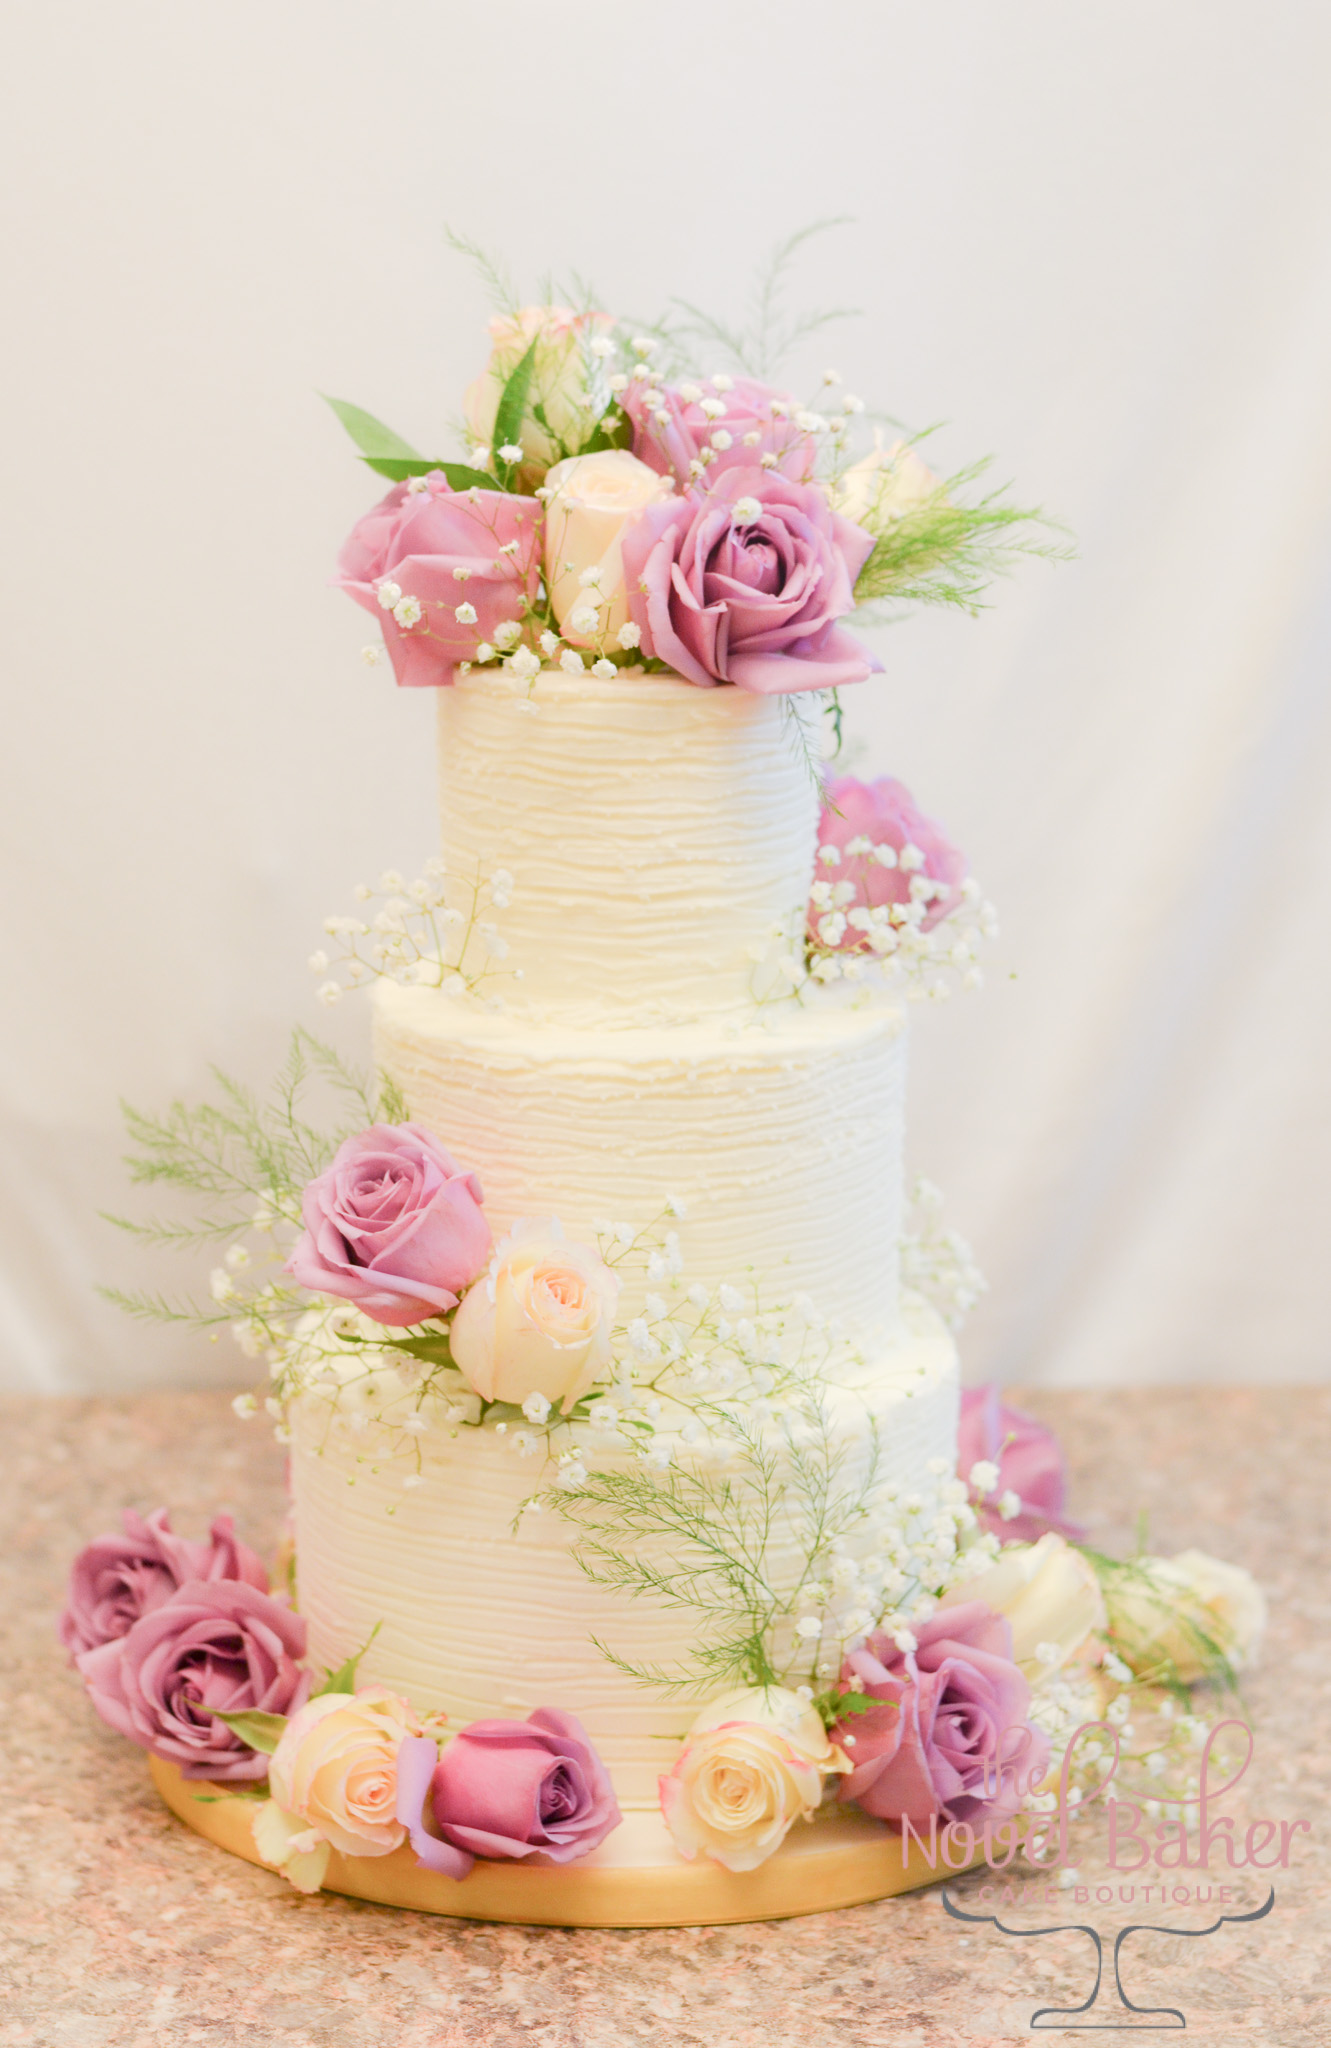 Three-tiered buttercream wedding cake with lavender roses